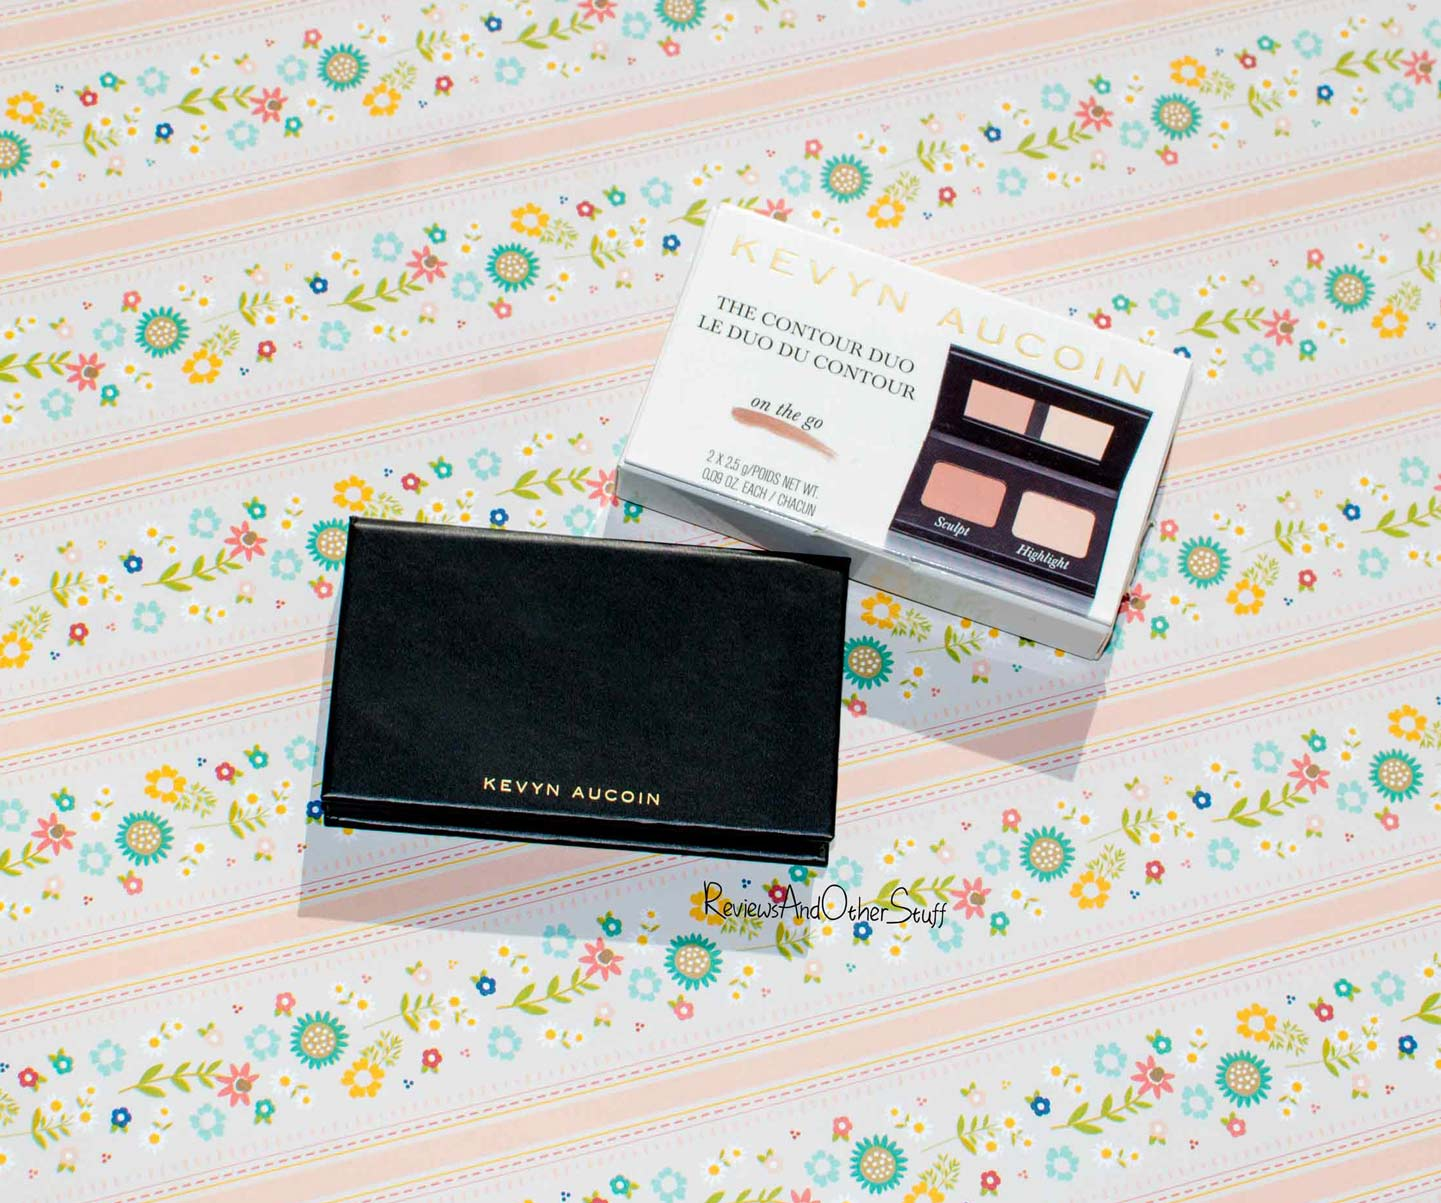 I've Got An Exciting Contouring Product To Introduce To You All The Kevyn  Aucoin Contour Duo On The Go It's A Little Contouringpact That's Great  For